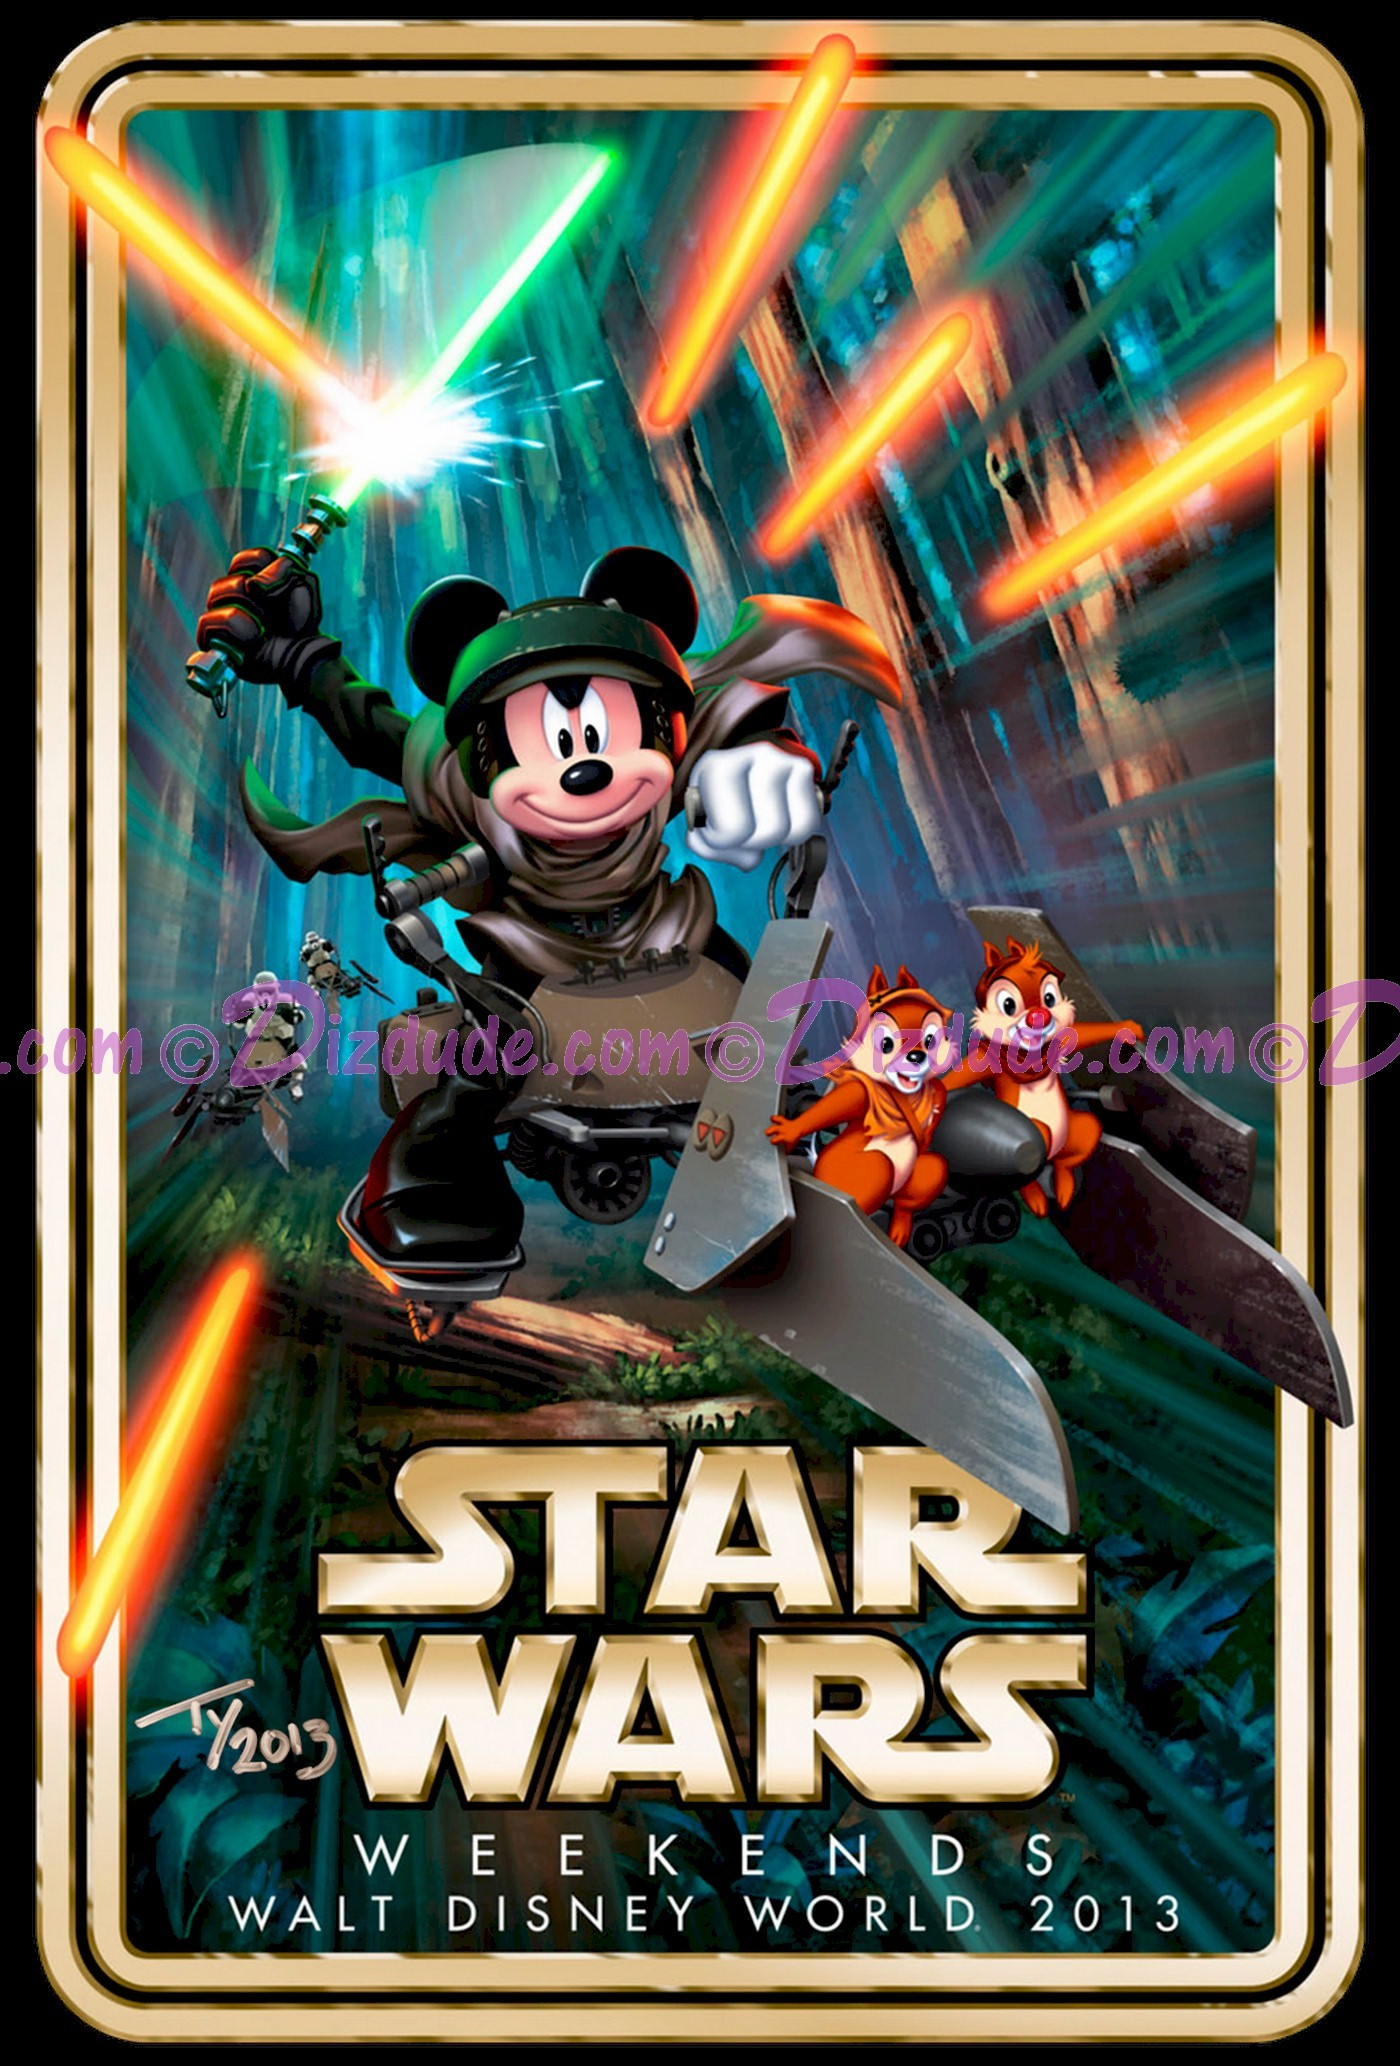 Autographed Exclusive Star Wars Weekends 2013 Event Logo Poster by Disney Artists Tyler Dumas © Dizdude.com